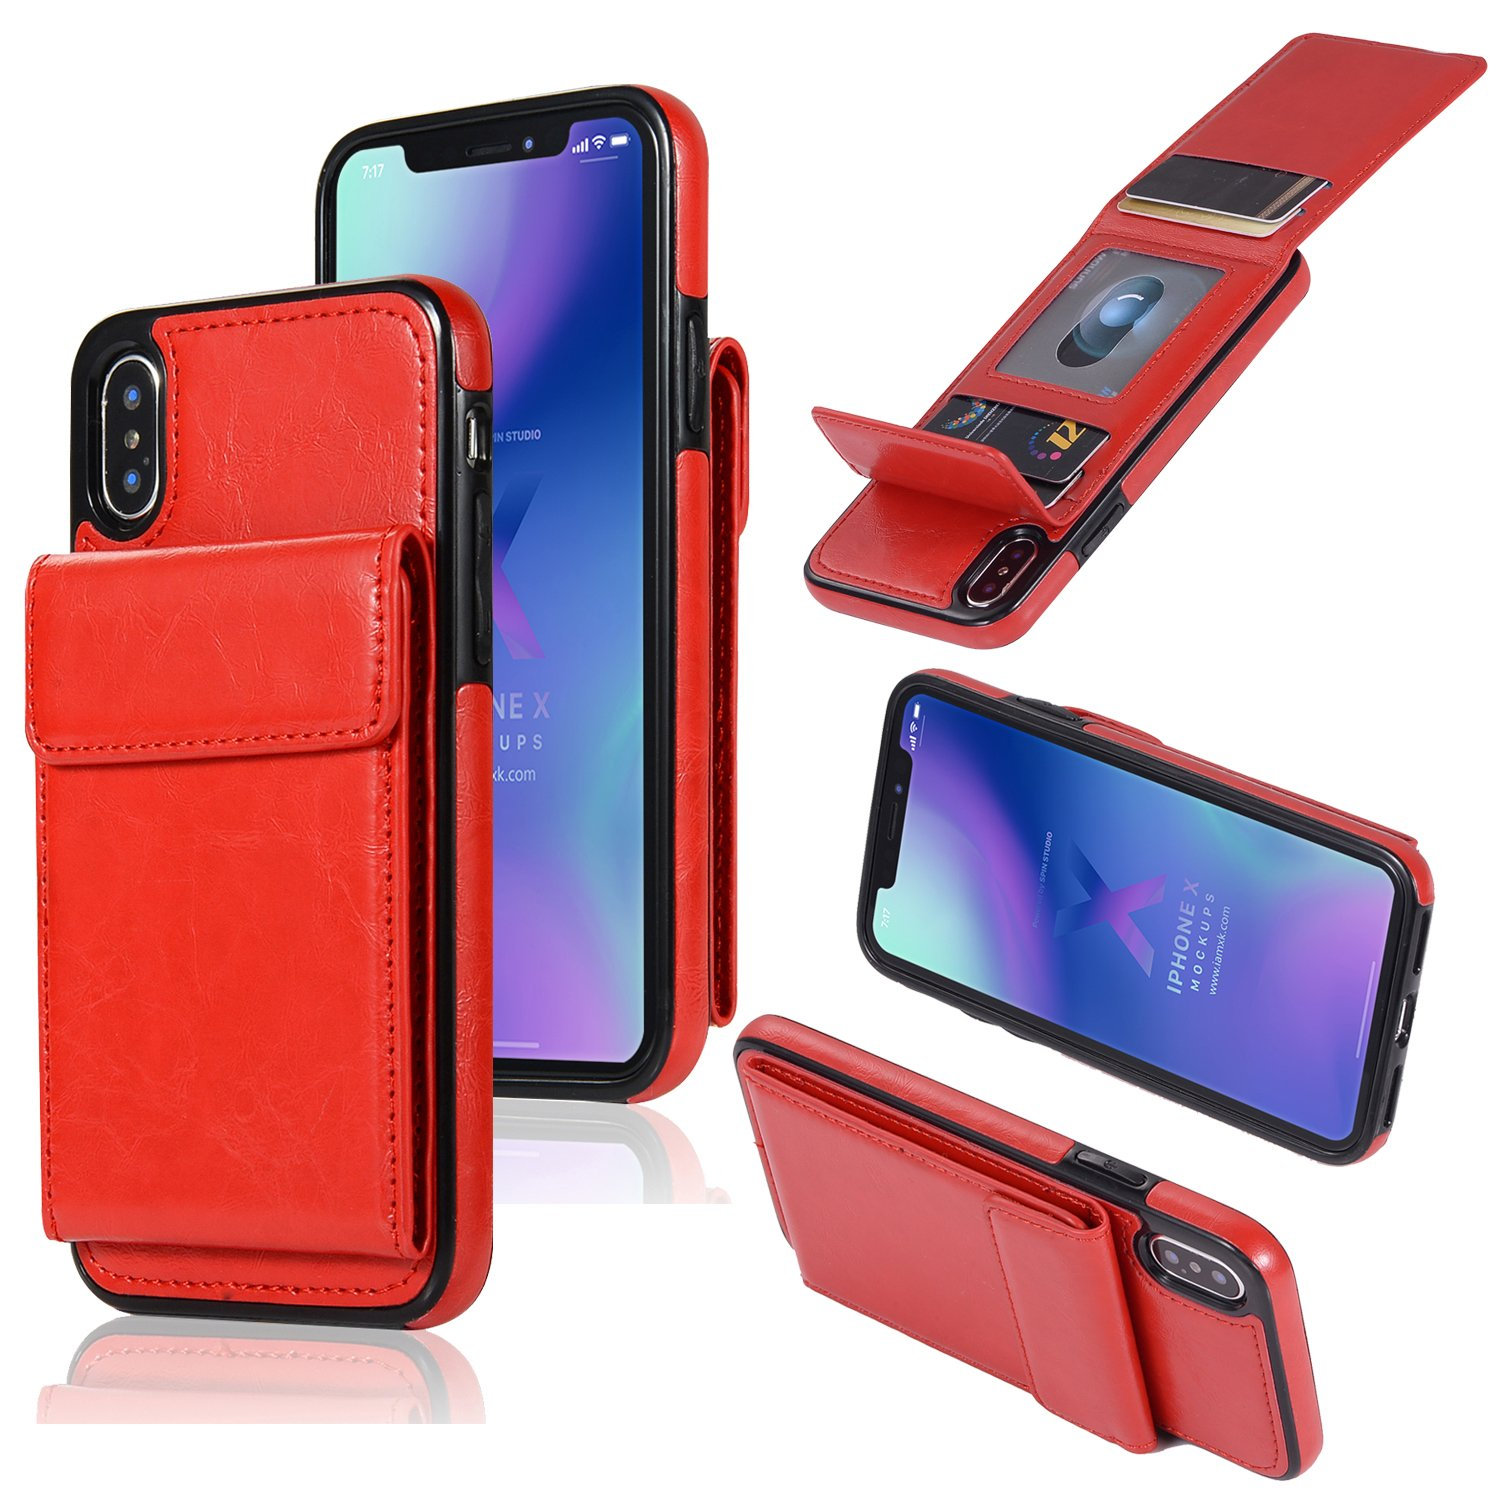 DAMONDY Wallet Case for iPhone X,iPhone Xs Case,Luxury Wallet Purse Card Holders Design Cover Soft Shockproof Bumper Folio Flip Leather Kickstand Case for iPhone X XS 5.8-red by DAMONDY